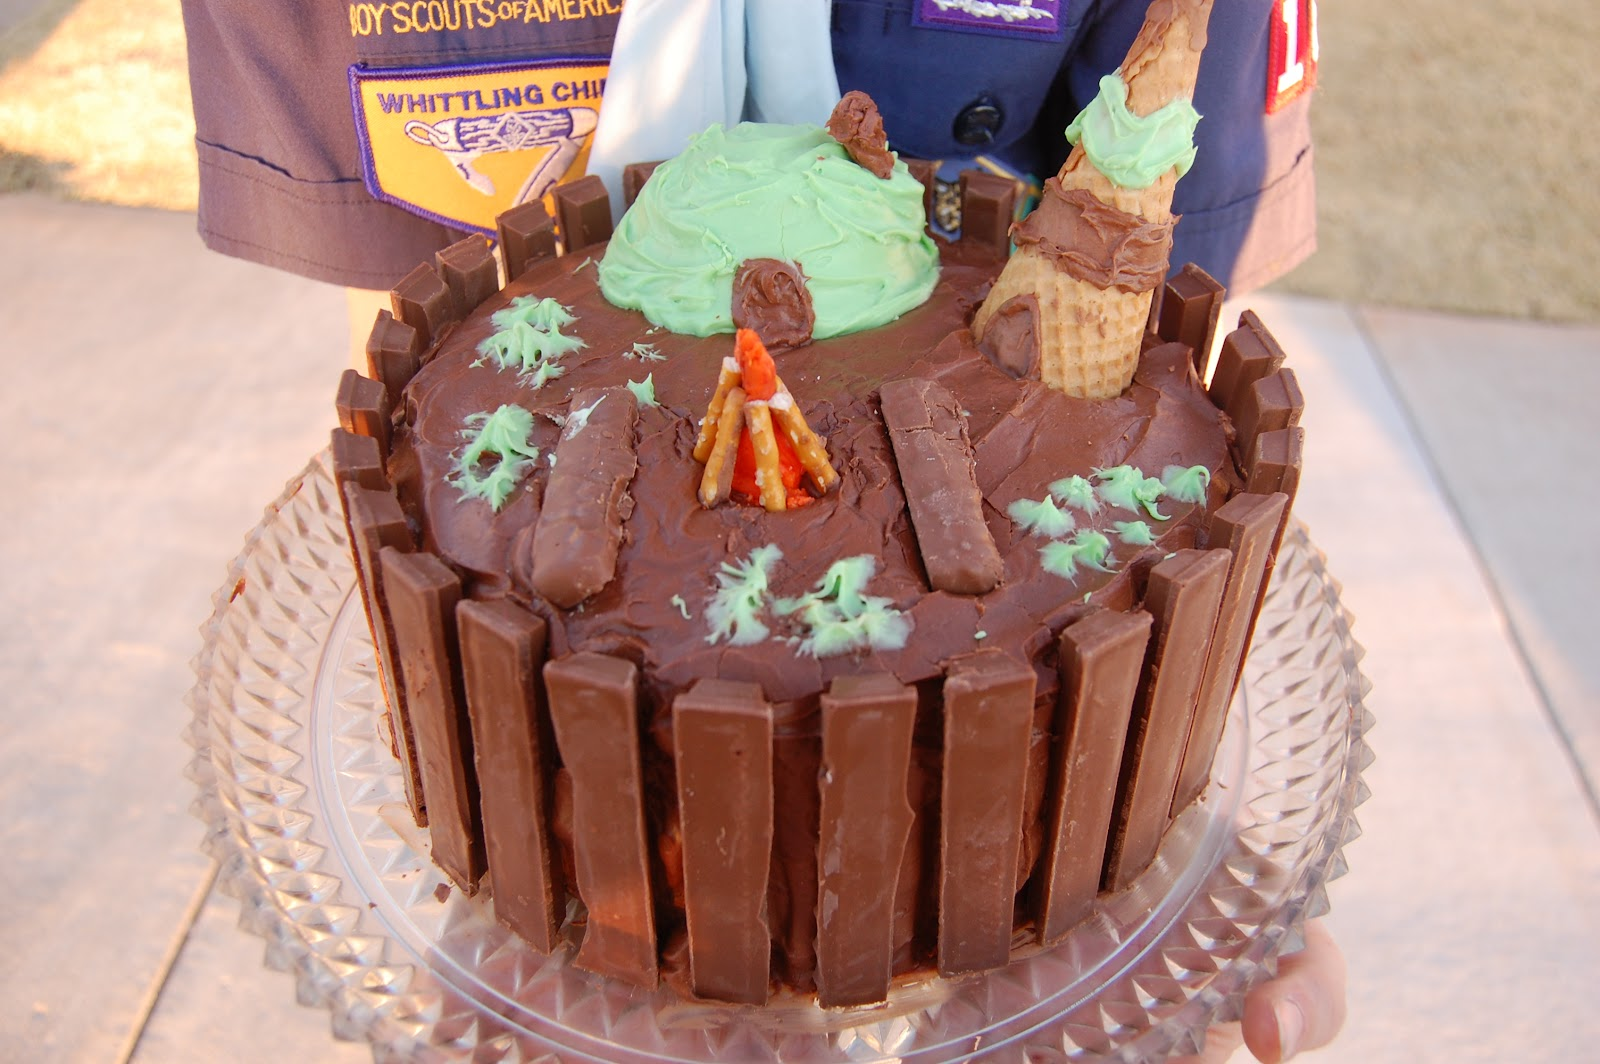 Cake Decorating Ideas For Boy Scouts : paystalenci - boy scouts cake decorating contest